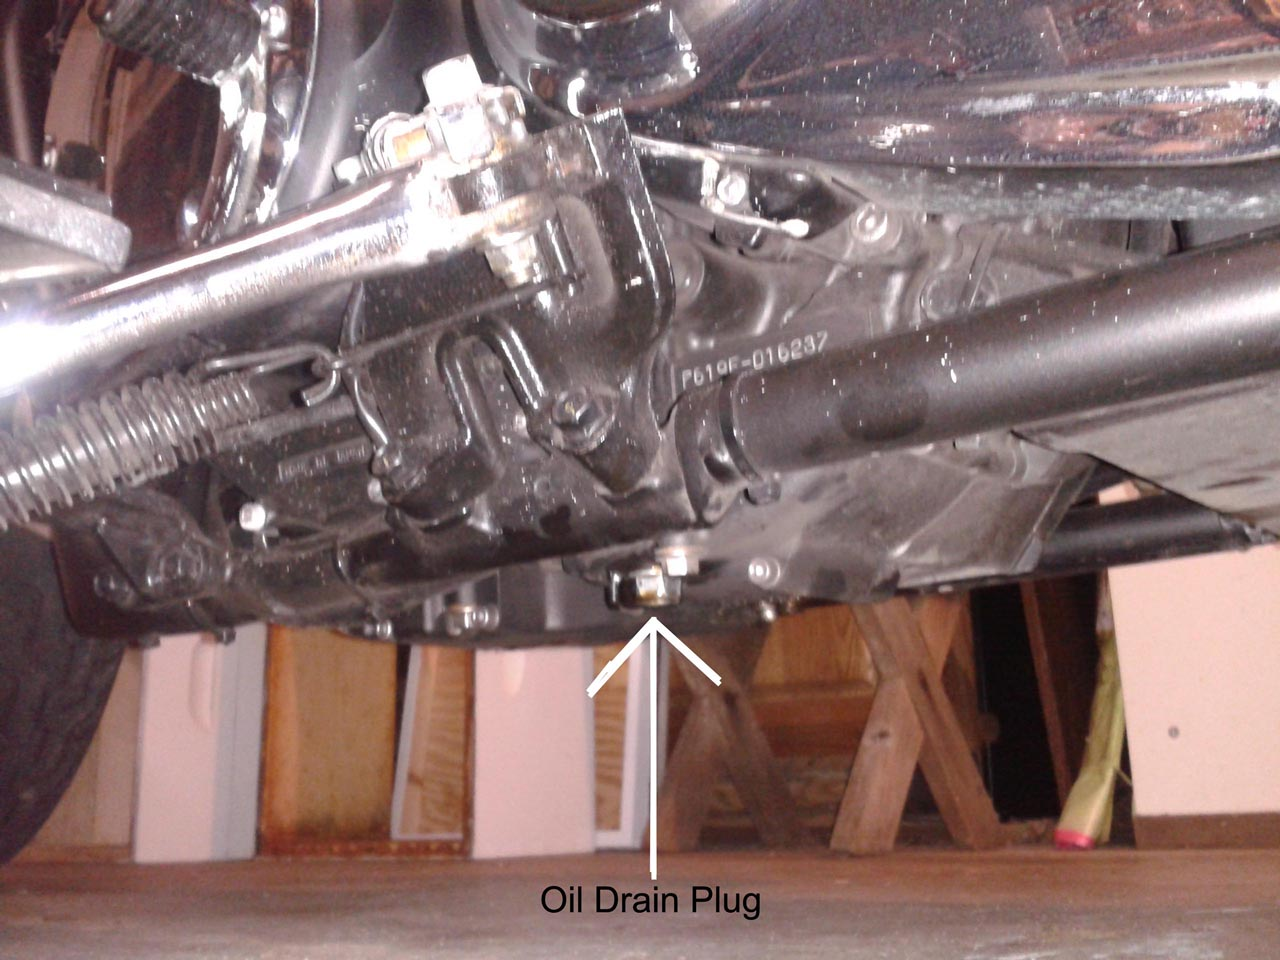 V-Star 1300 picture showing the real oil drain plug